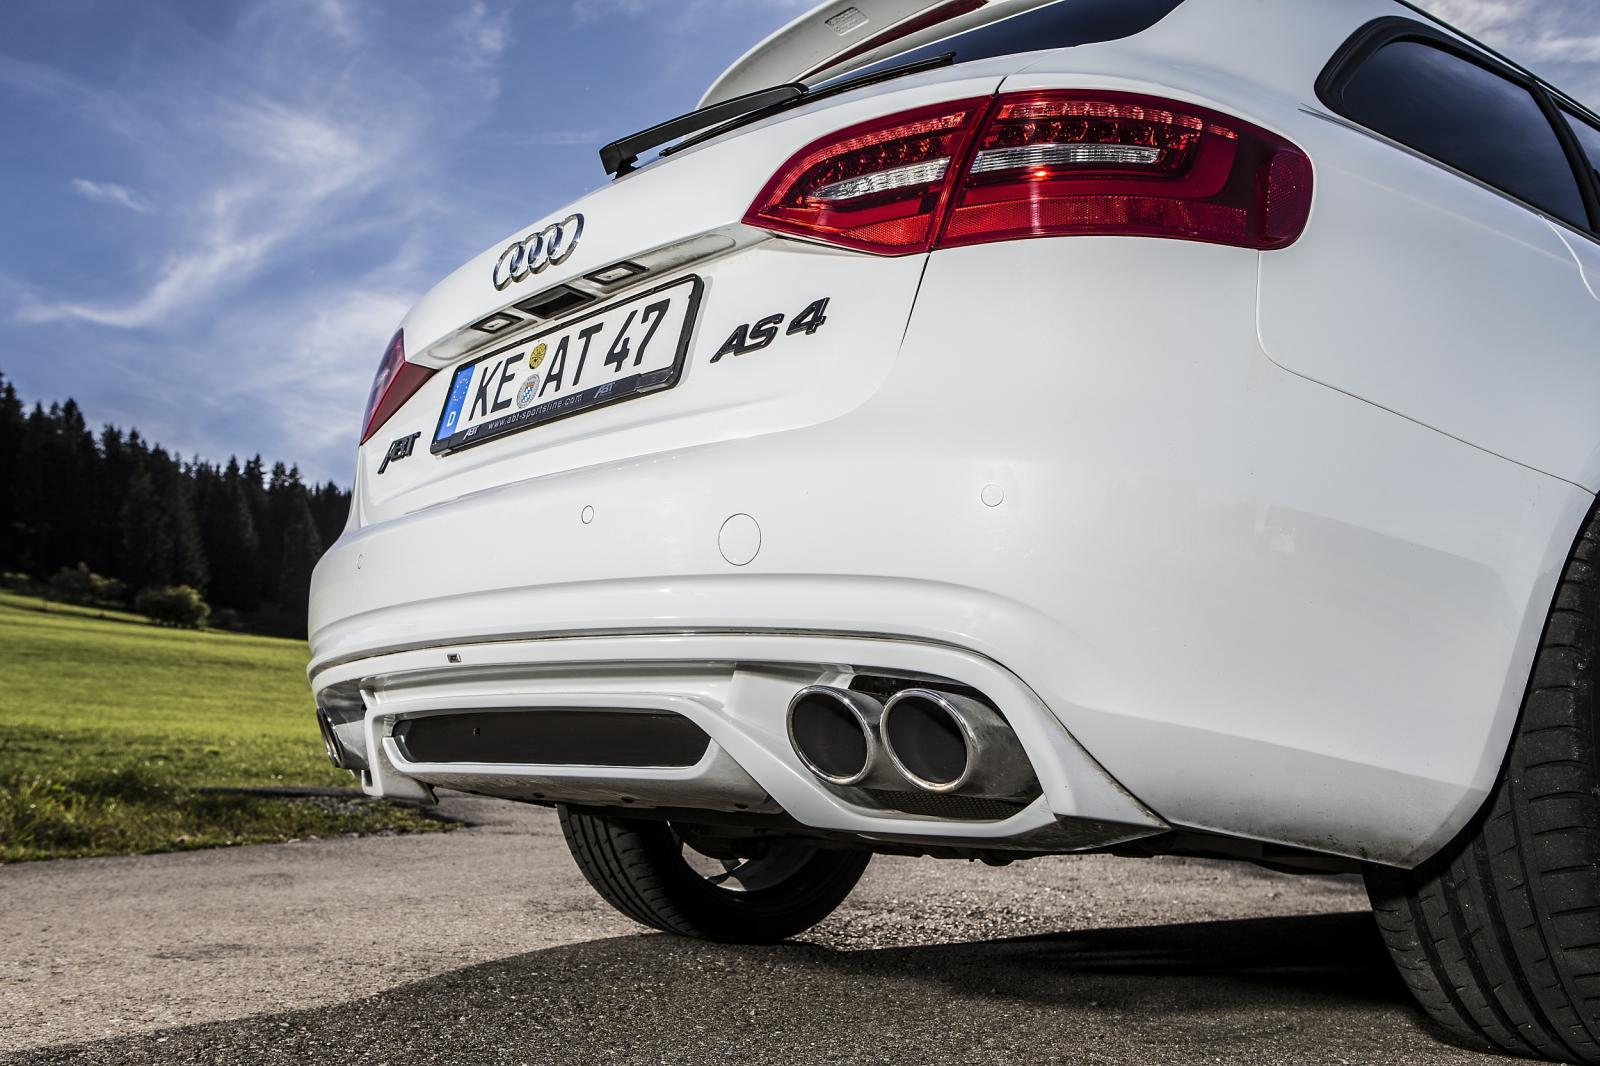 abt as4 06 Power, prestige and performance – ABT AS4 and AS4 Avant